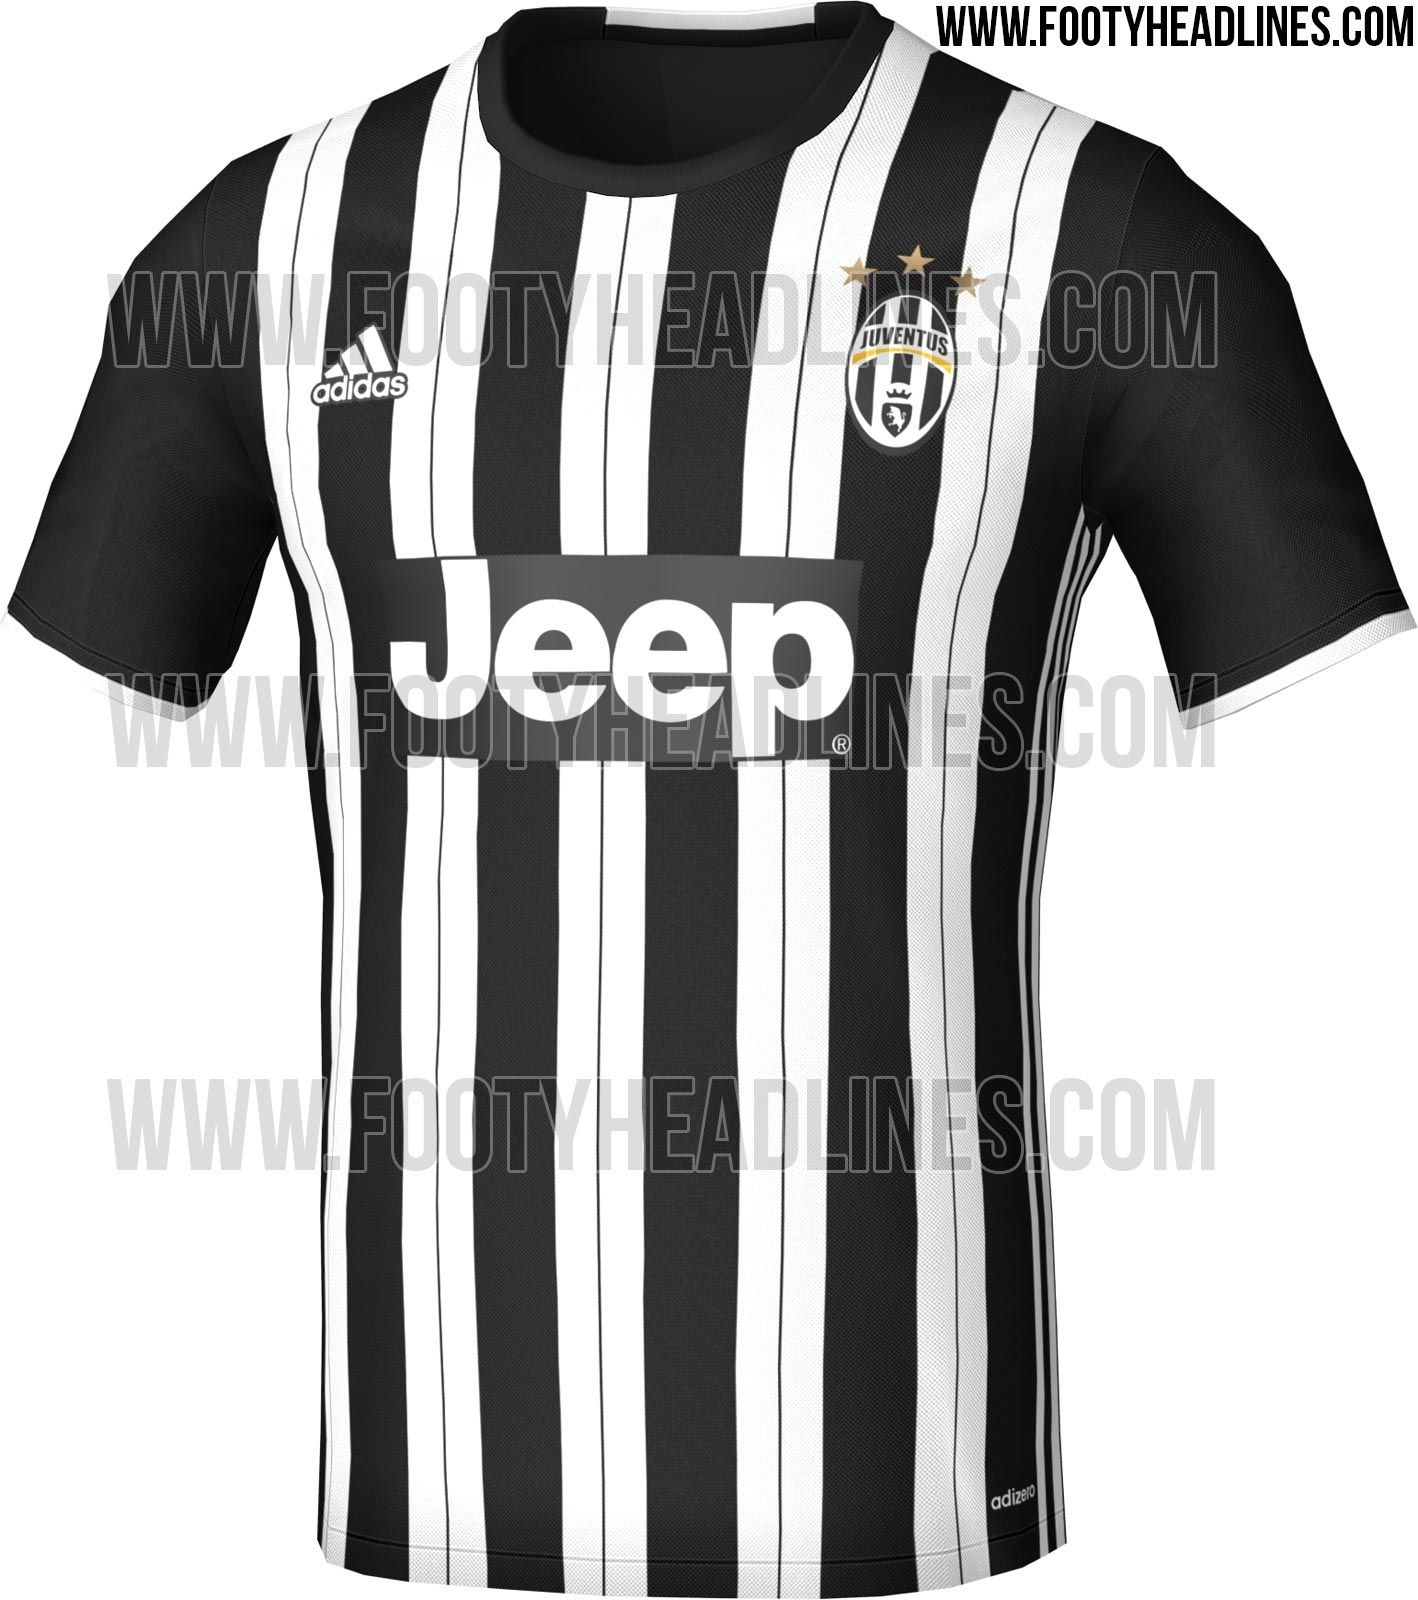 c0b0e3fc8a3 Juventus 16-17 Home Kit Leaked - Footy Headlines